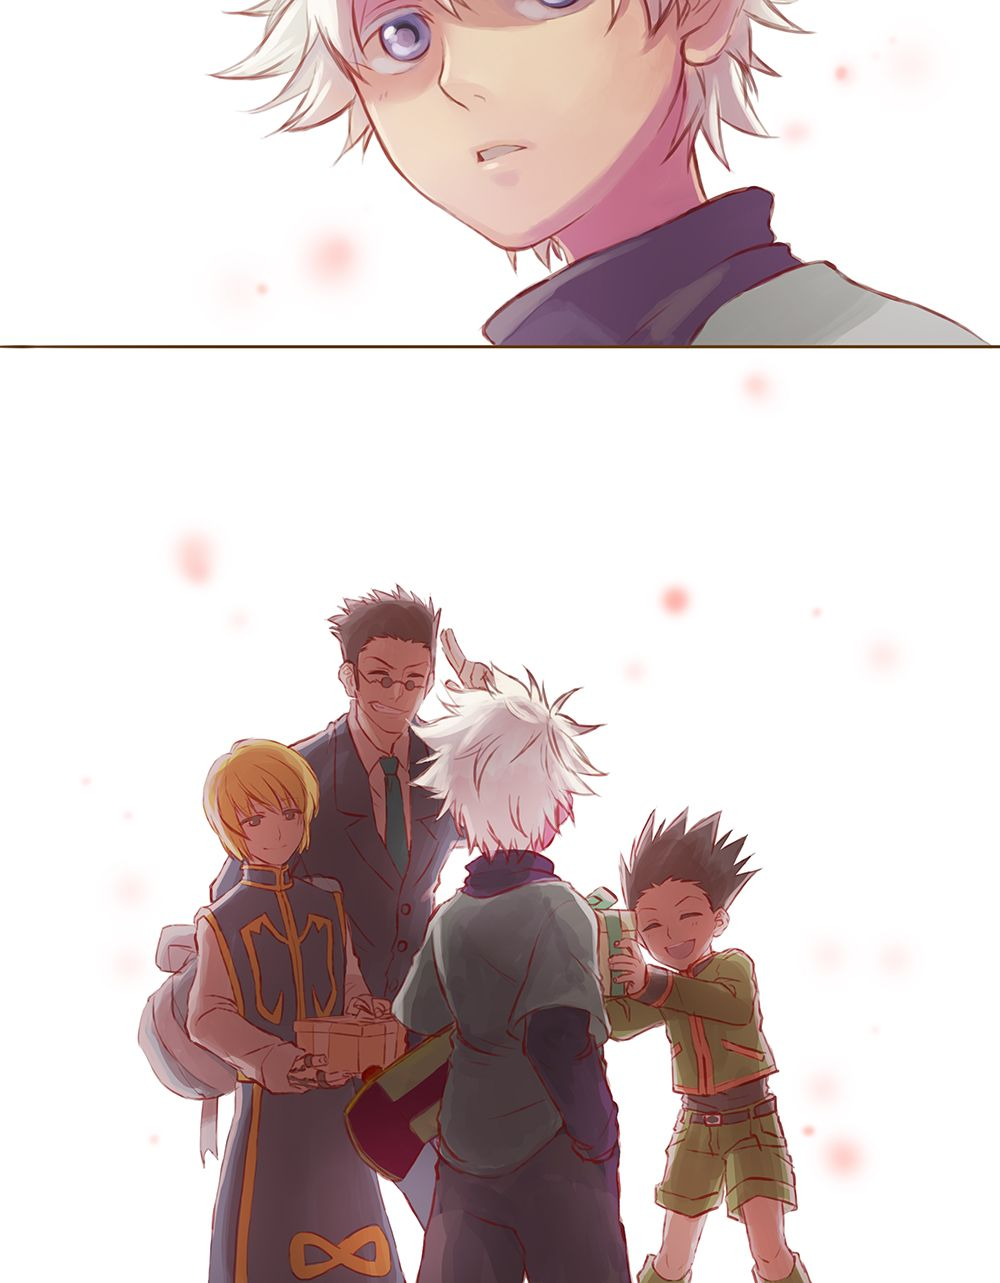 2.July 7th. Happy birthday Killua.